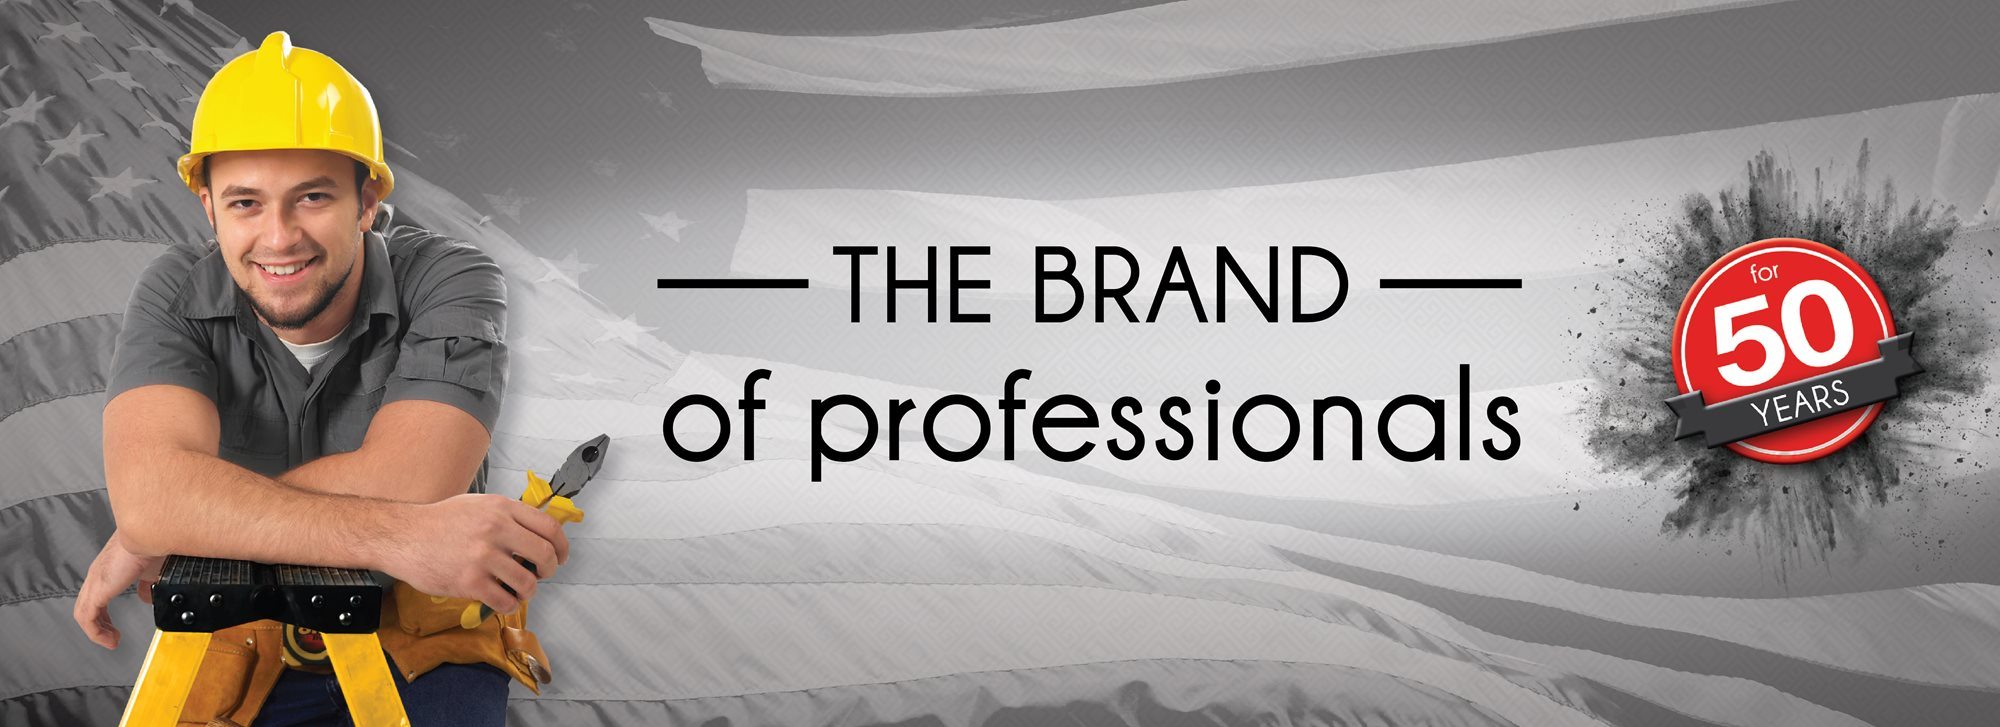 Ouellet, the brand of professionals